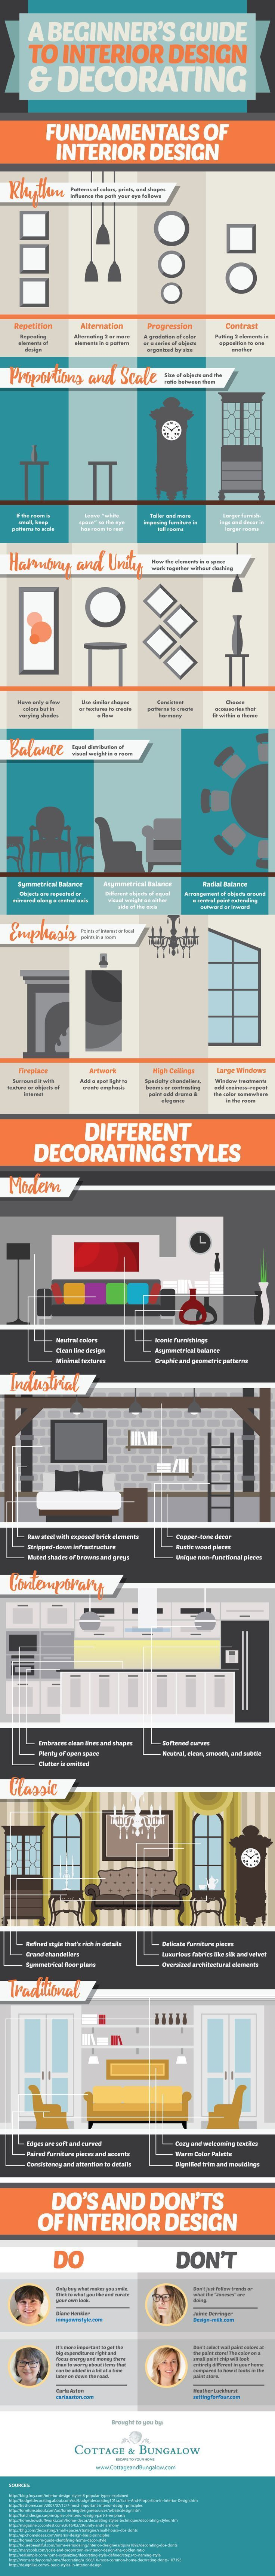 About Interior Design Career best 20+ interior design jobs ideas on pinterest | interior design